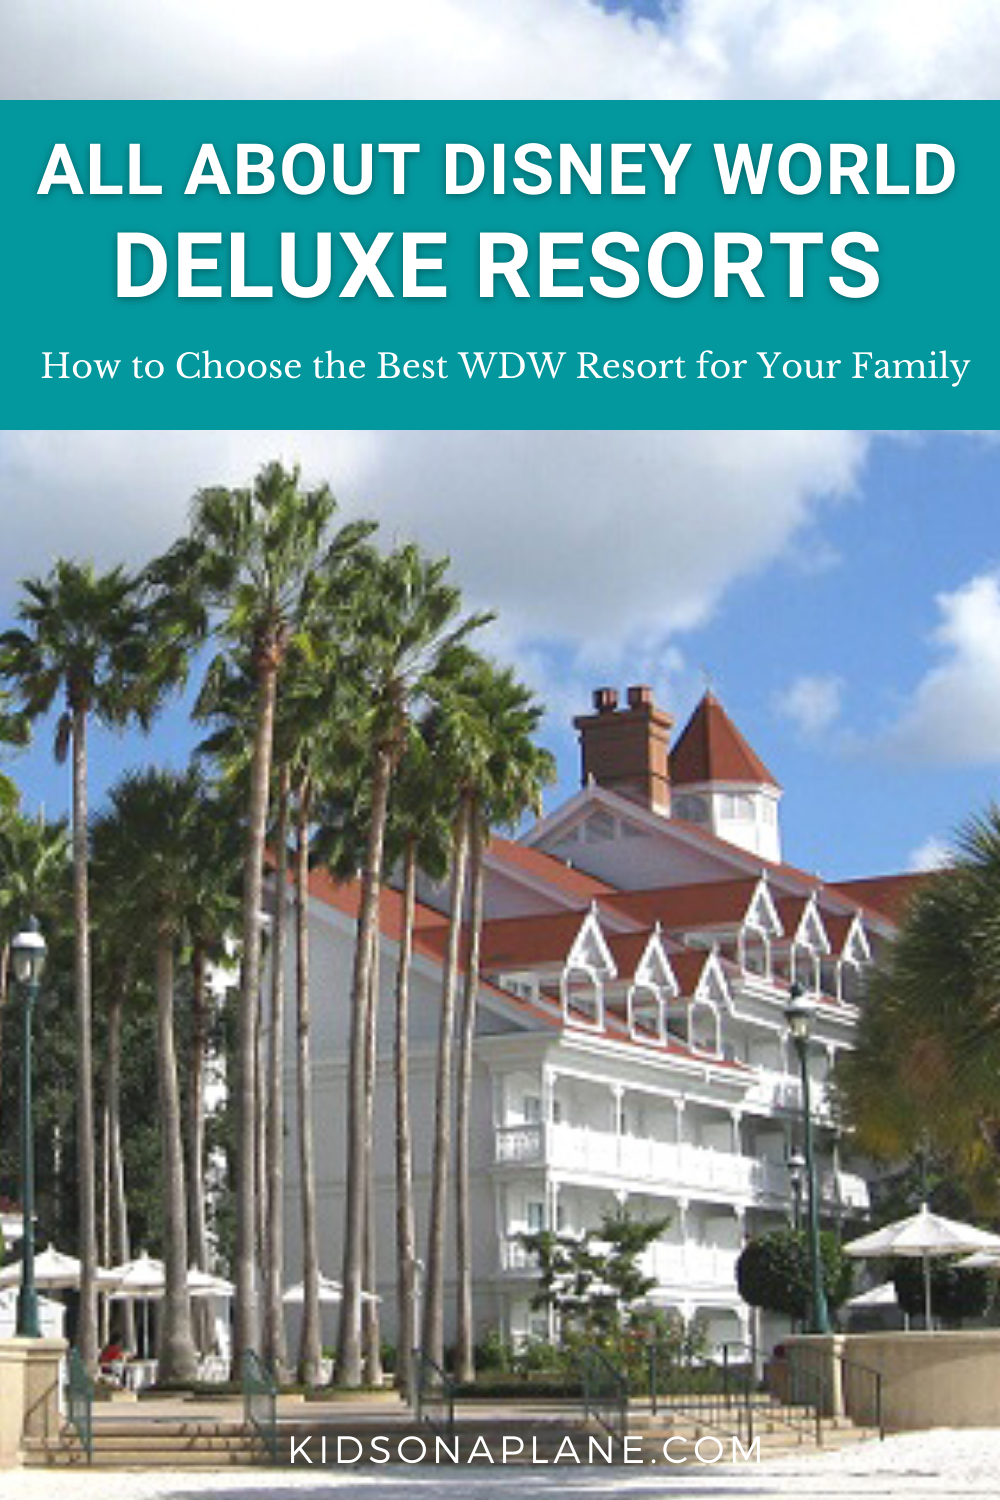 Disney World Deluxe Resorts - Everything you need to know - cost pros and cons and how to choose the right one